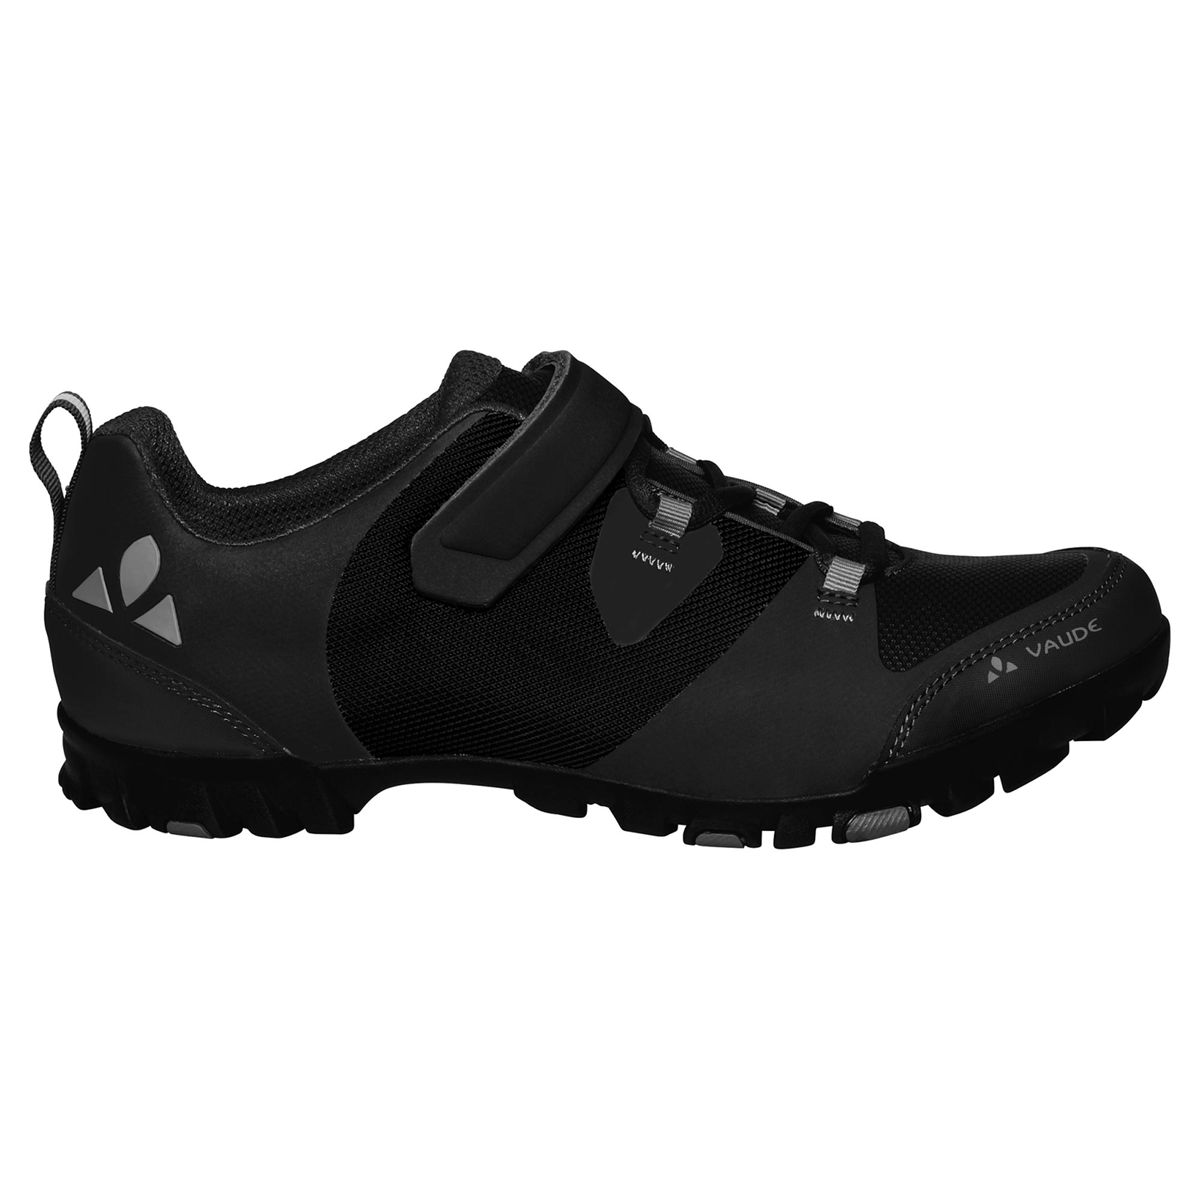 VAUDE Men's TVL Pavei cycling shoes | Shoes and overlays